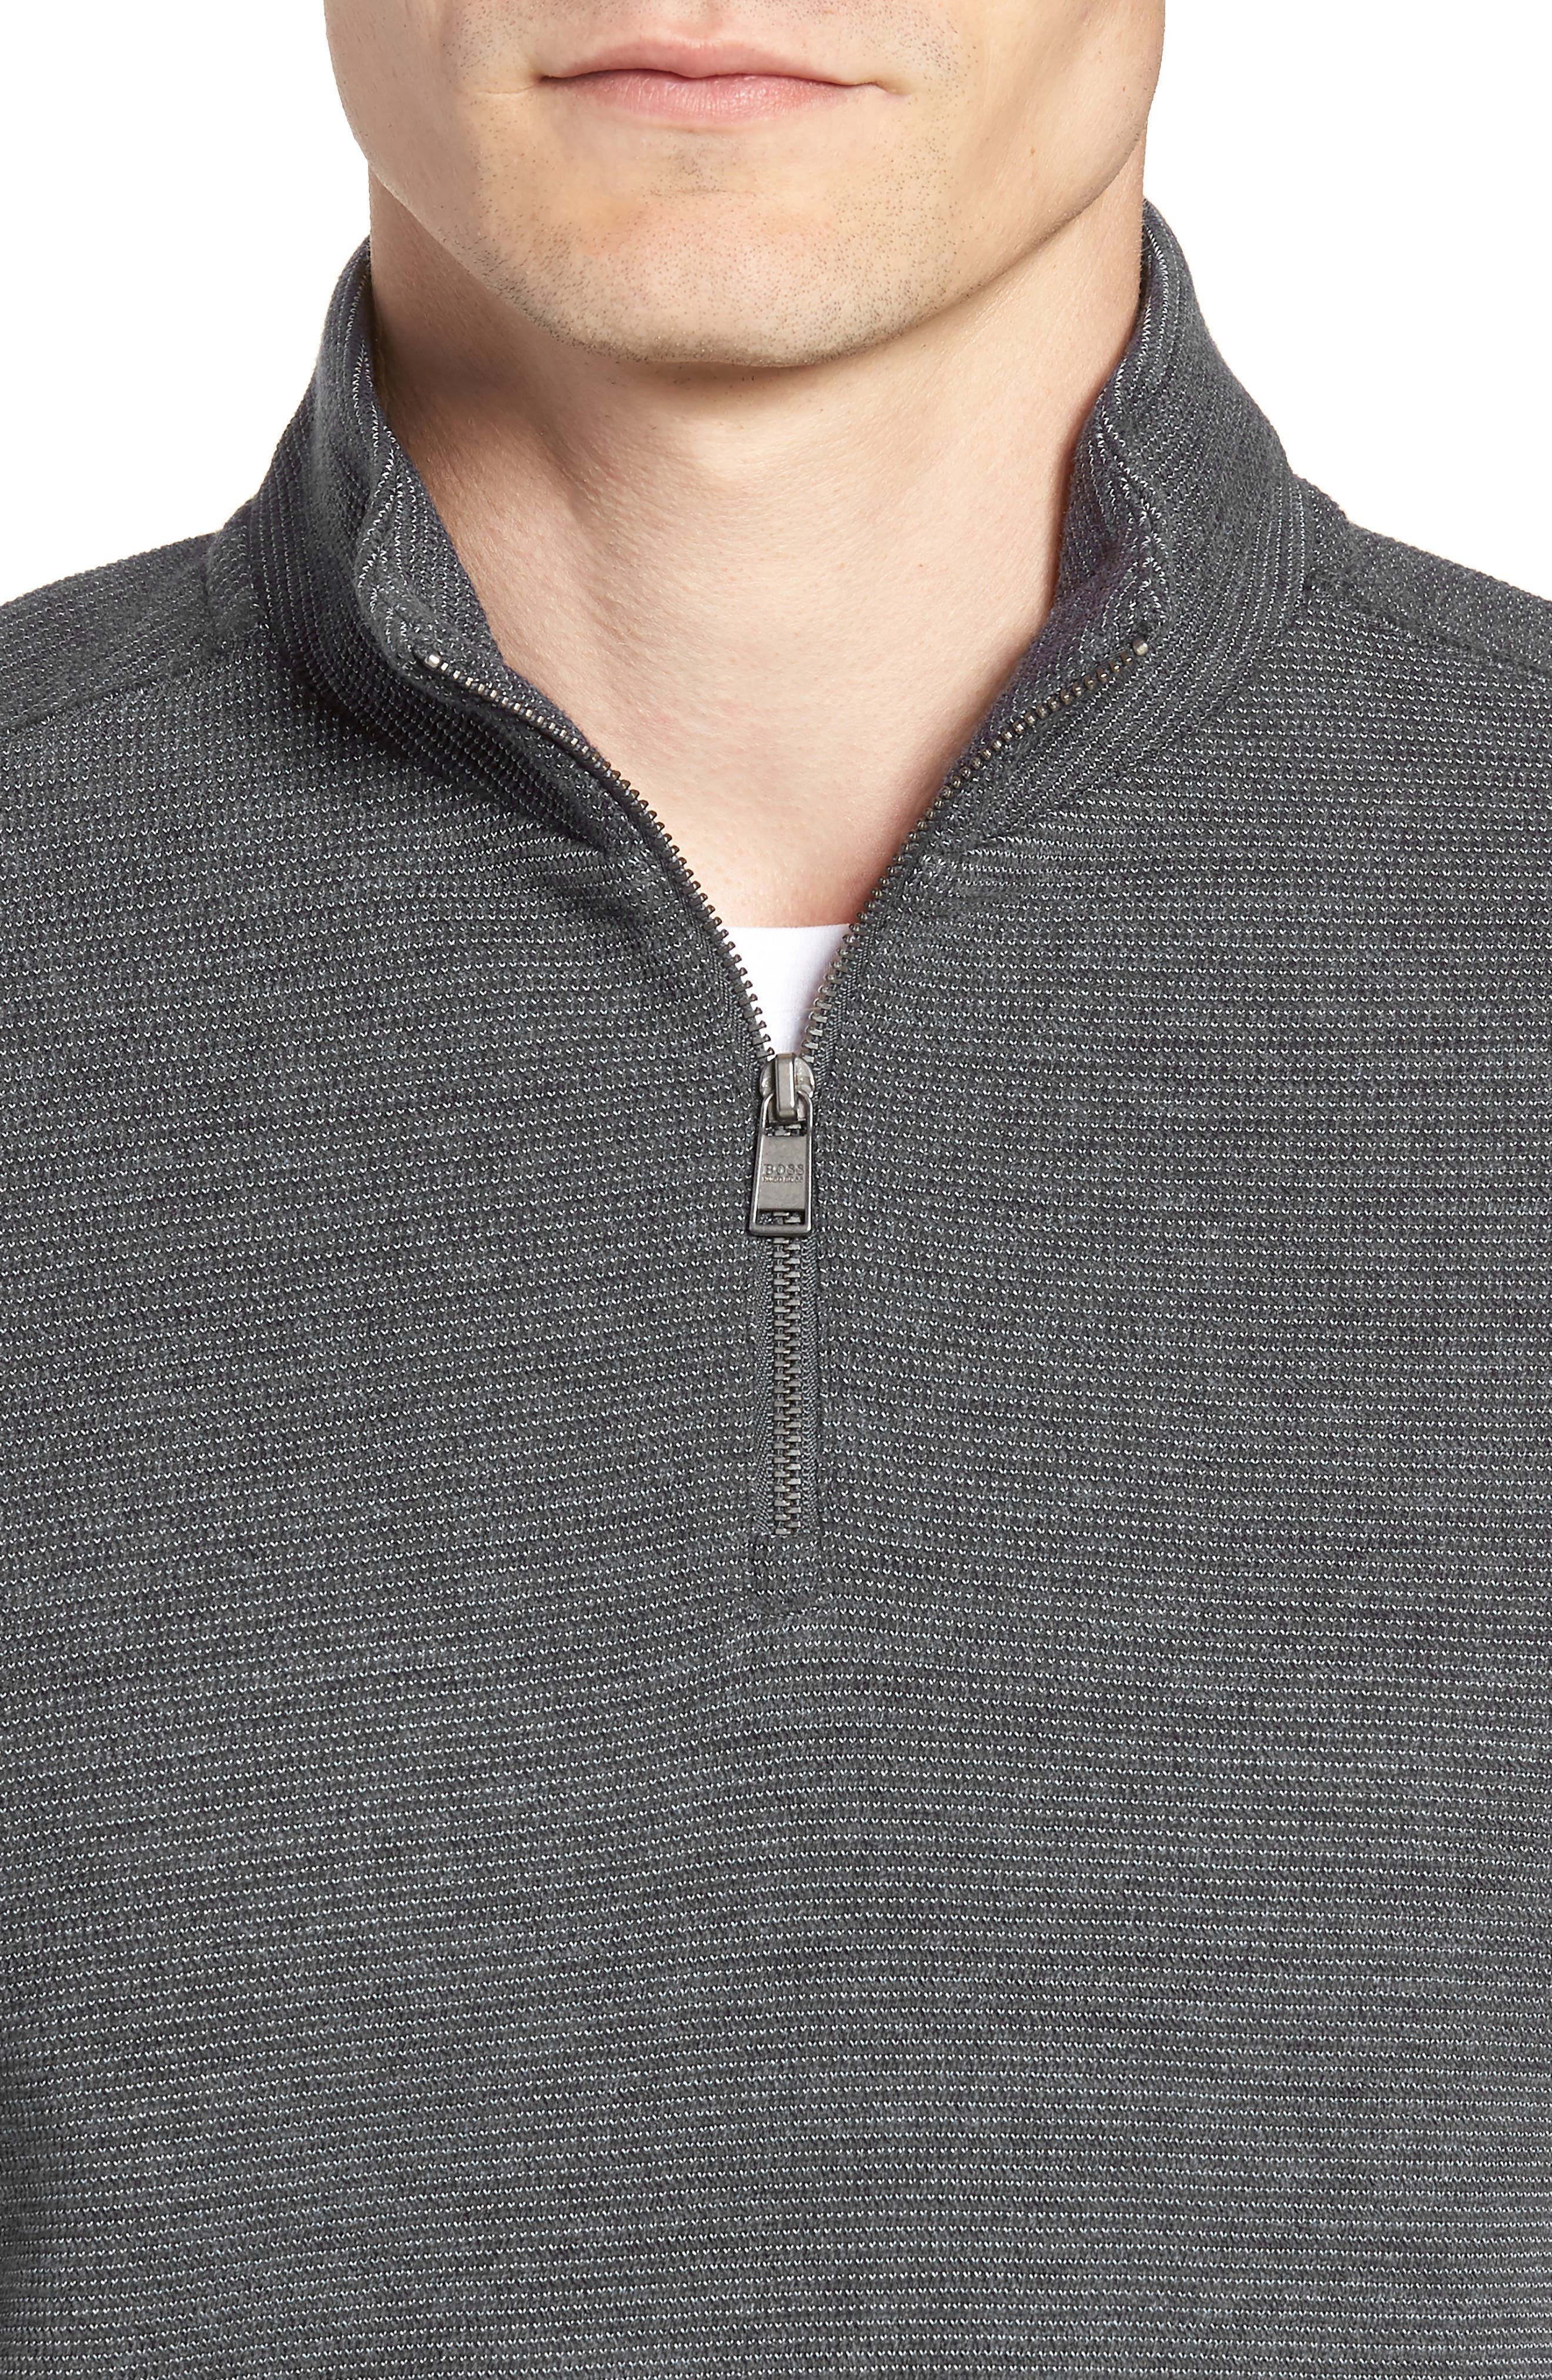 Slim Fit Quarter Zip Polo,                             Alternate thumbnail 4, color,                             CHARCOAL